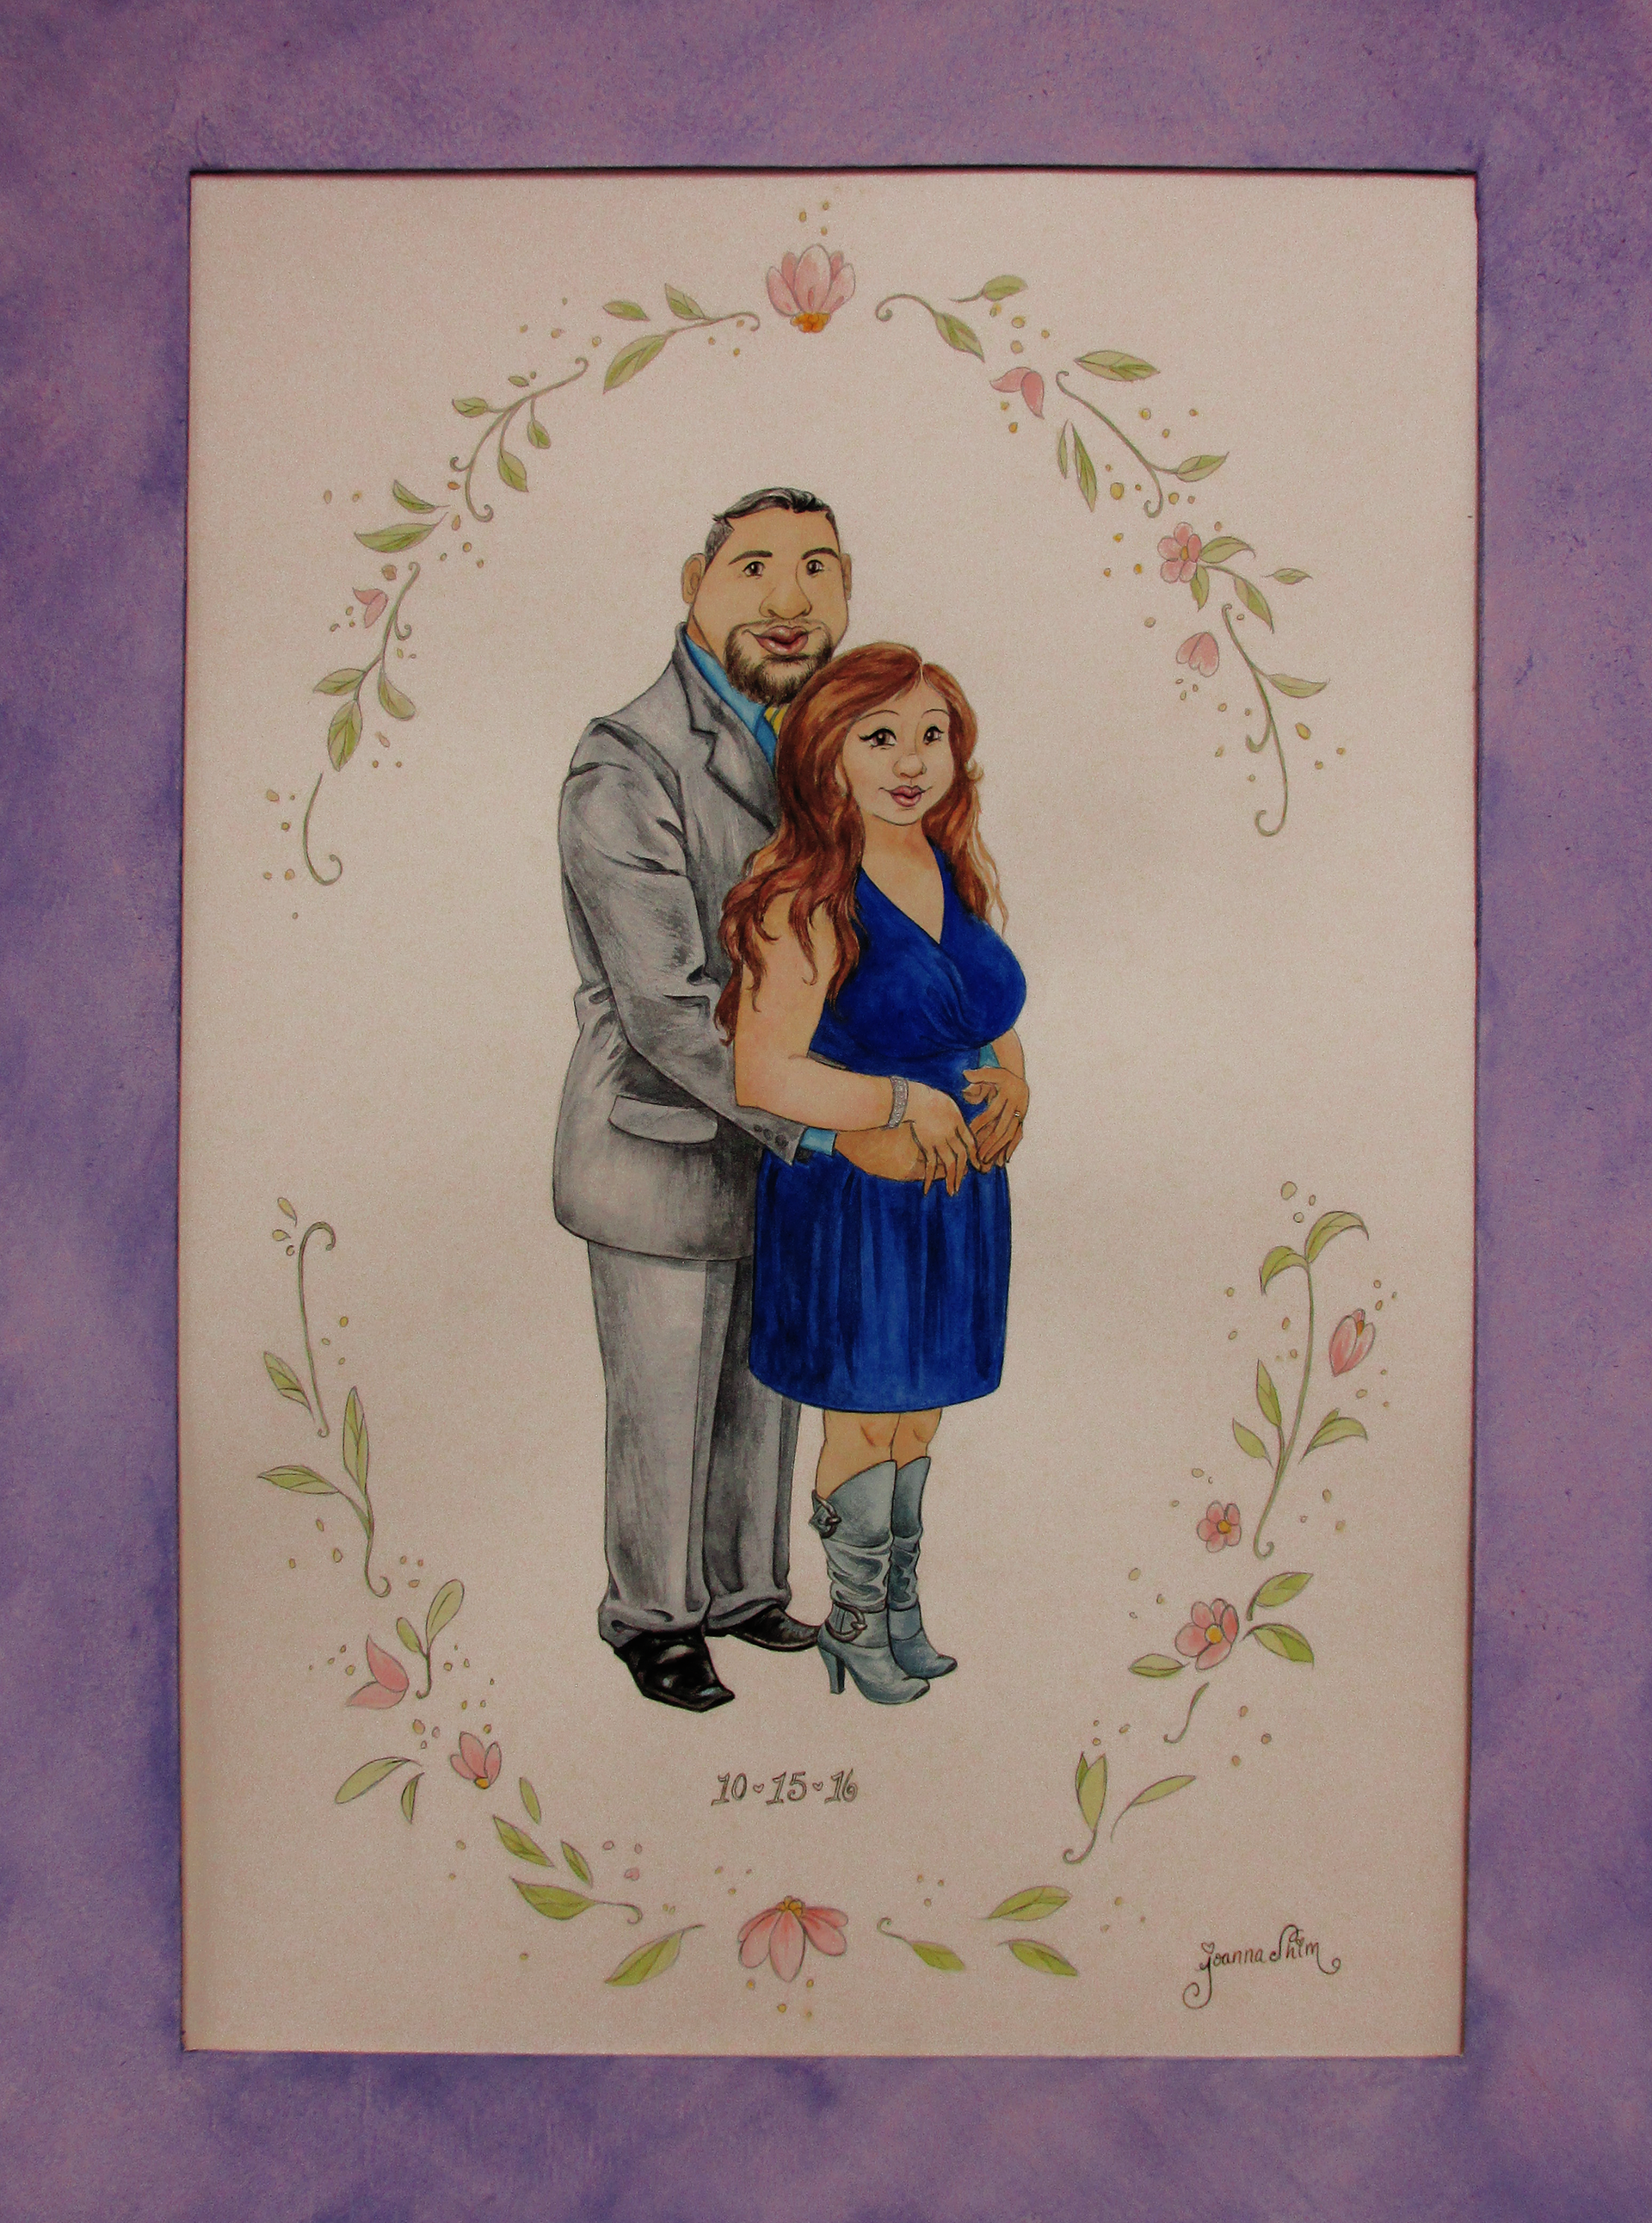 My friend commissioned me to paint a wedding anniversary gift for her parents.